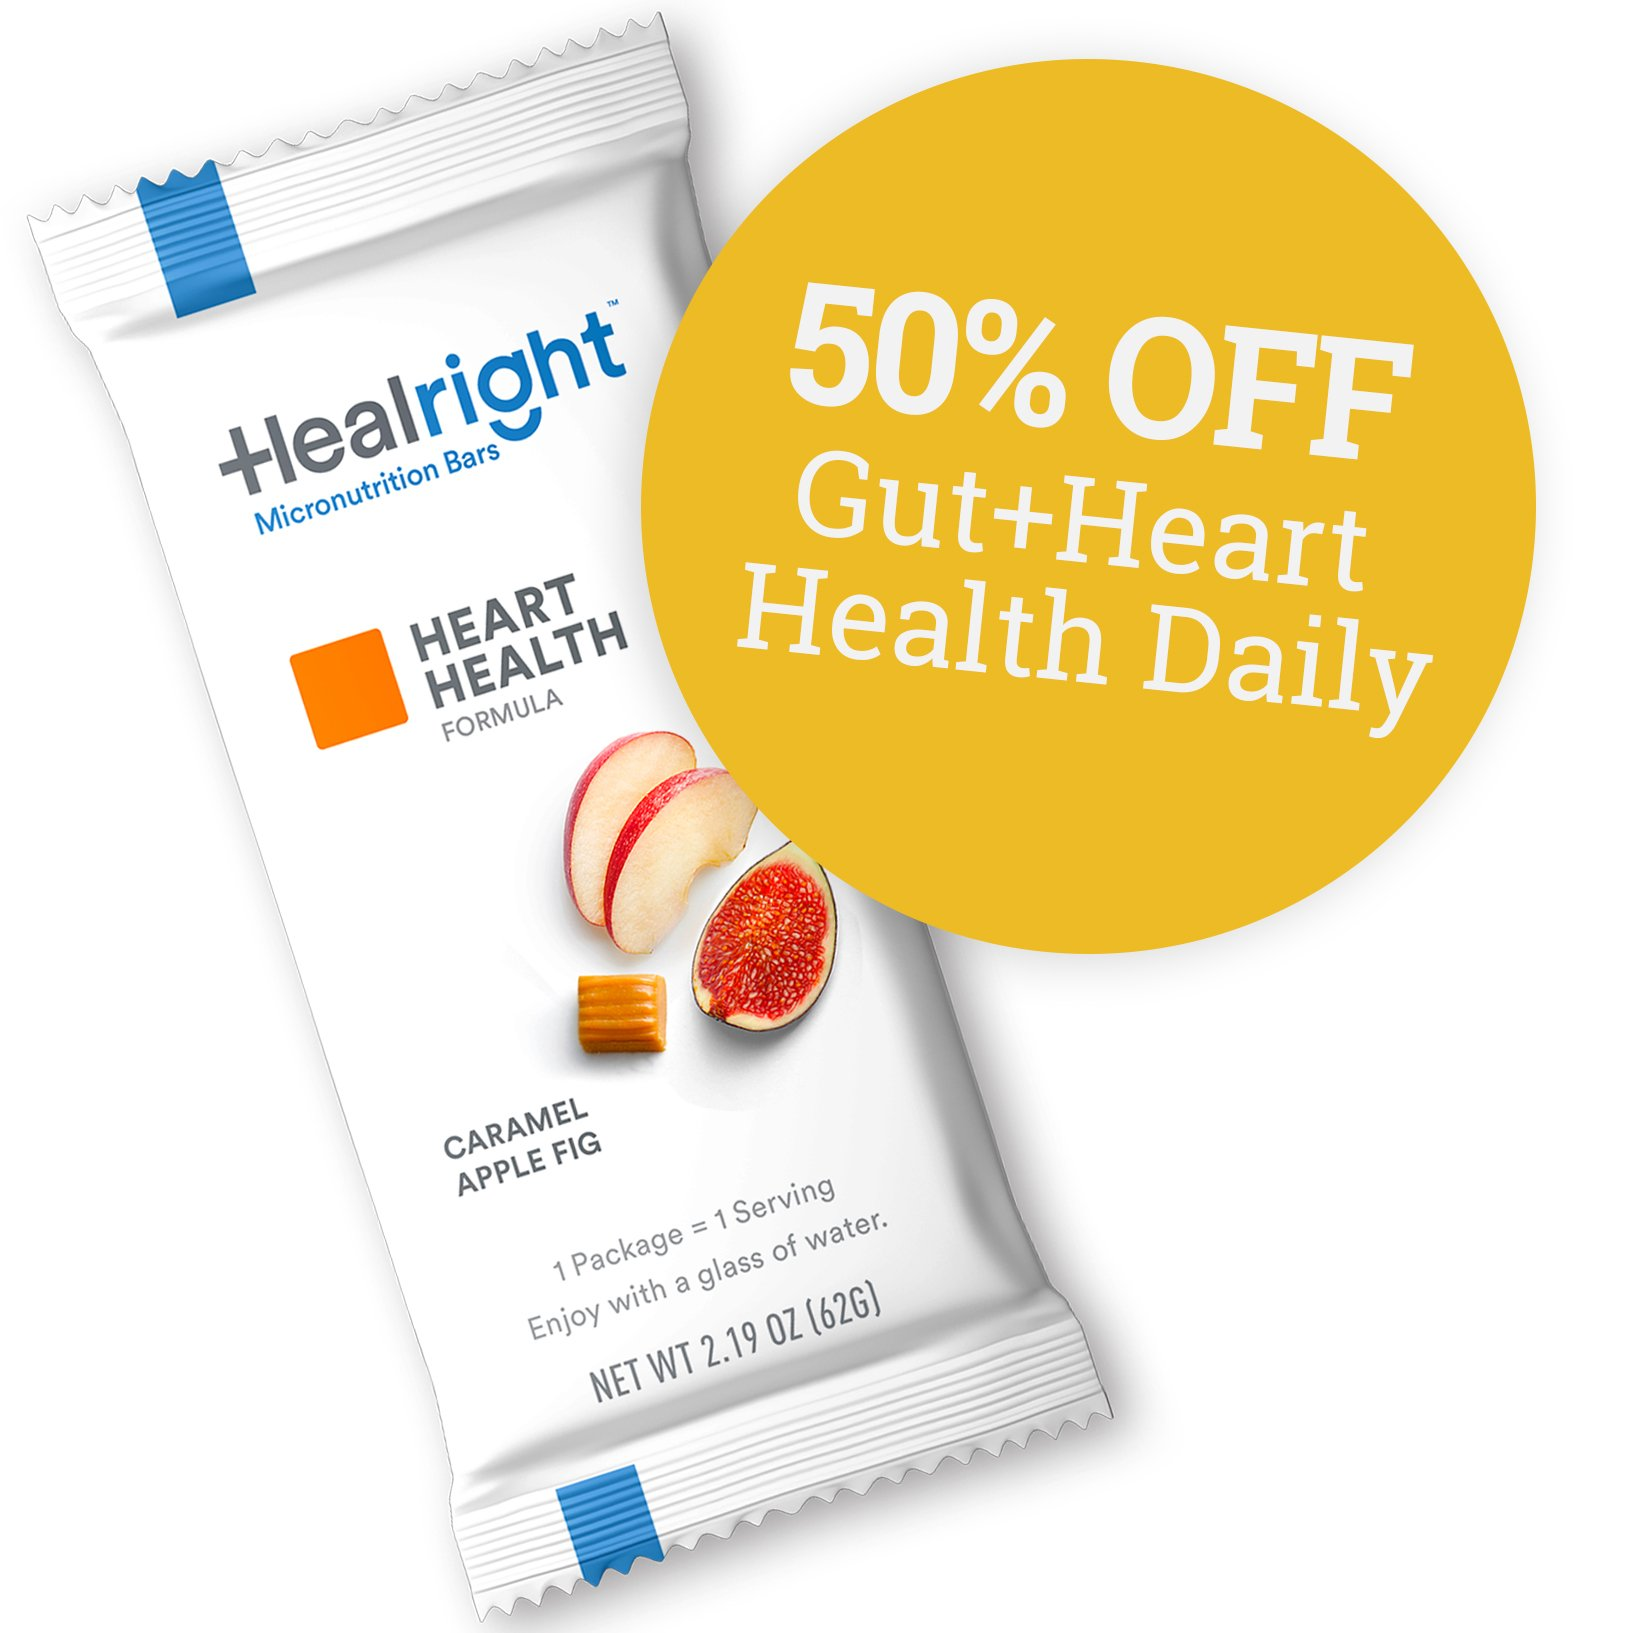 50% Off Gut + Heart Health Daily with Caramel Apple Fig flavor